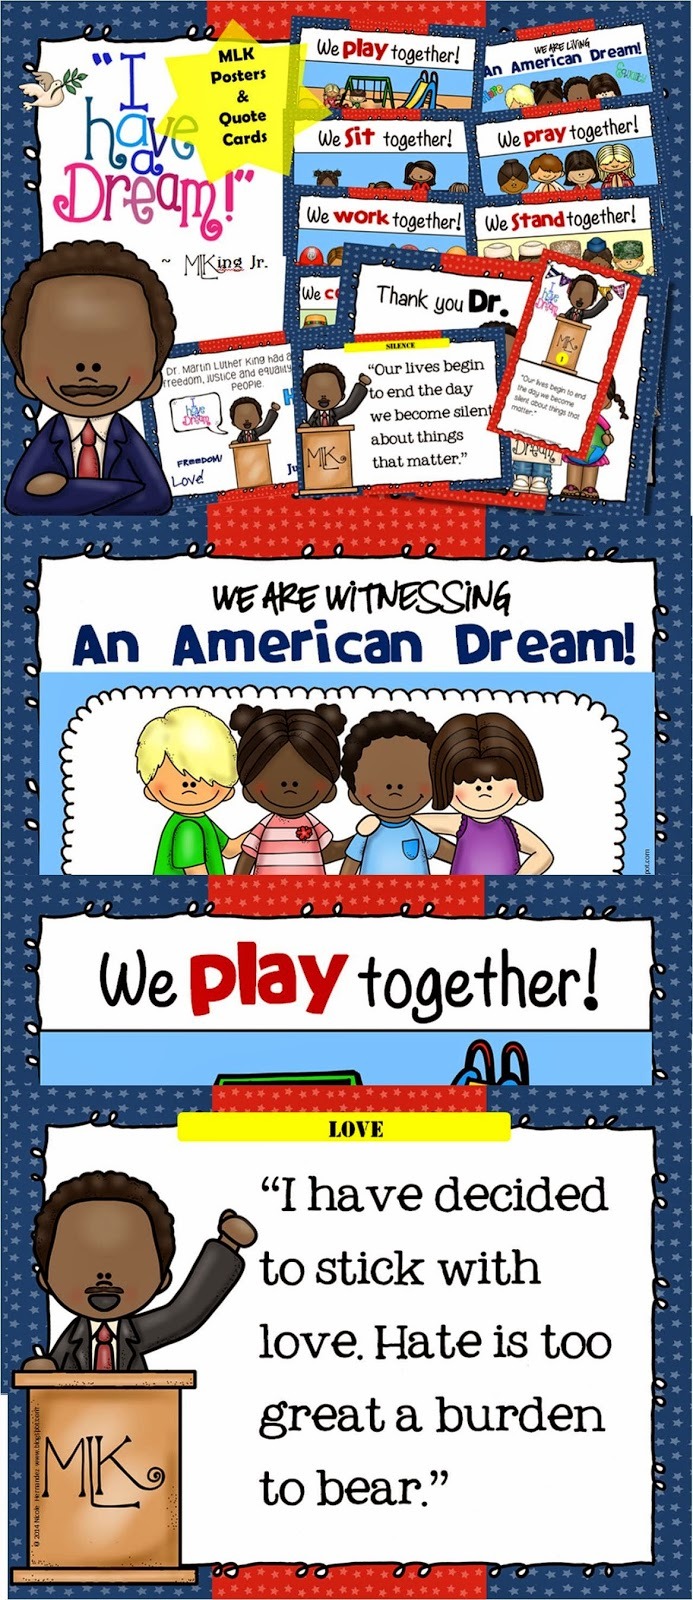 http://www.teacherspayteachers.com/Product/Dr-Martin-Luther-King-Jr-Kid-Friendly-Dreams-and-Quotes-Posters-with-Cards-1626517